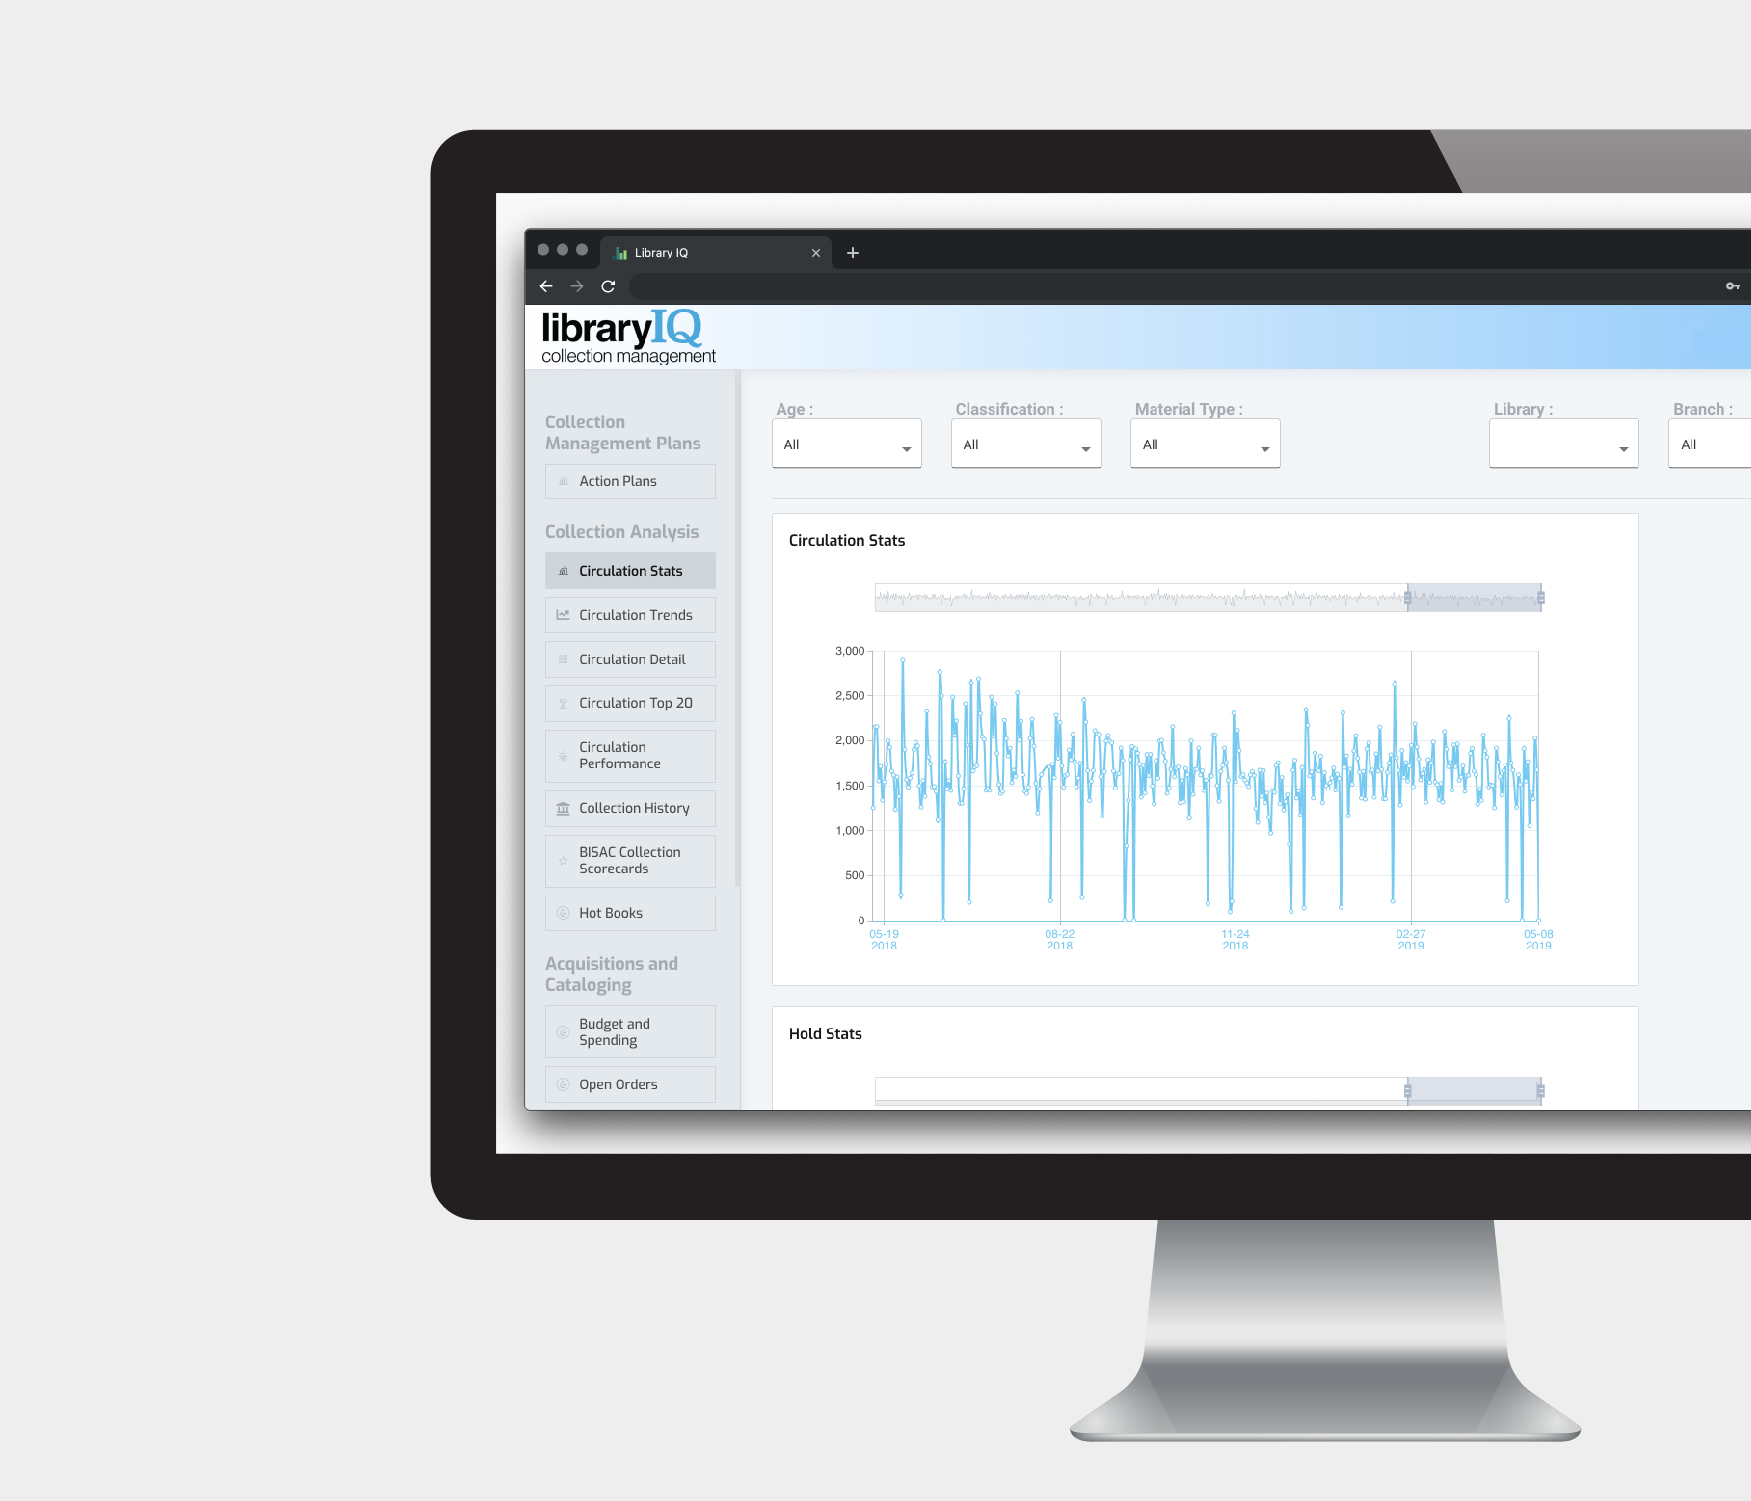 Collection Performance Monitoring & Planning - Optimize collection quality and alignment with community need through data insights. Understand critical data, develop a plan, track metrics and review performance for measurable results.